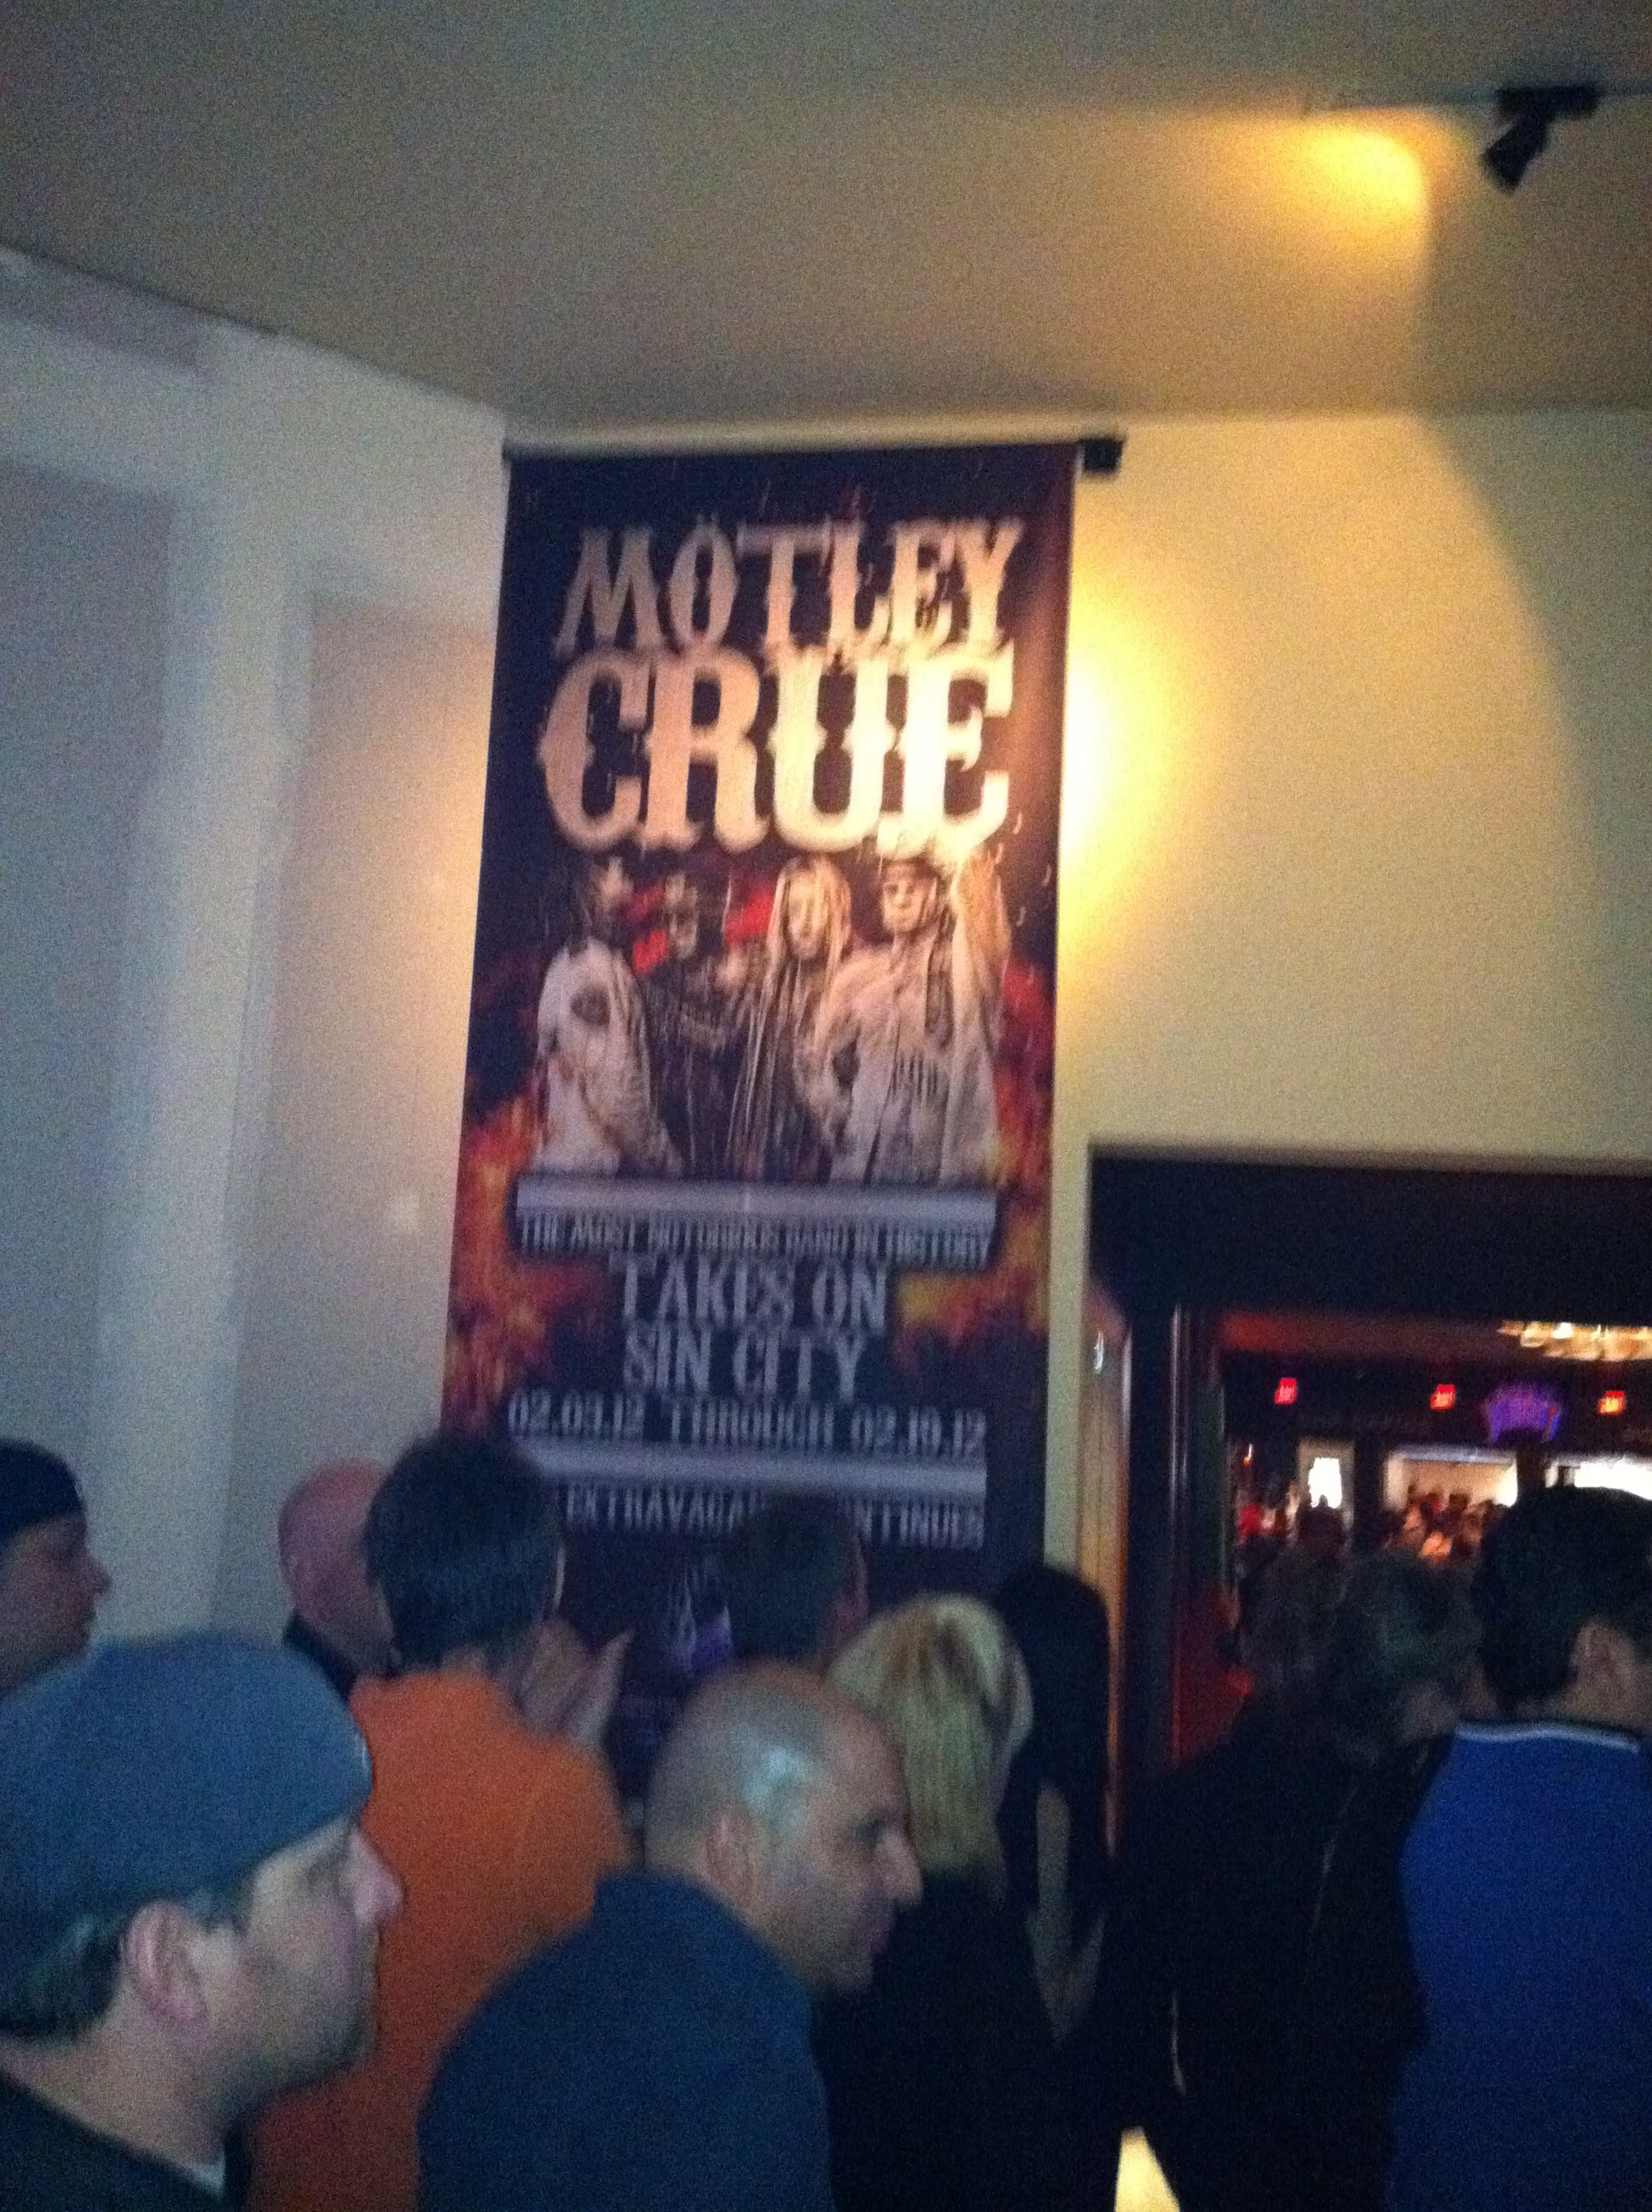 Motley Crue @ The Joint LV